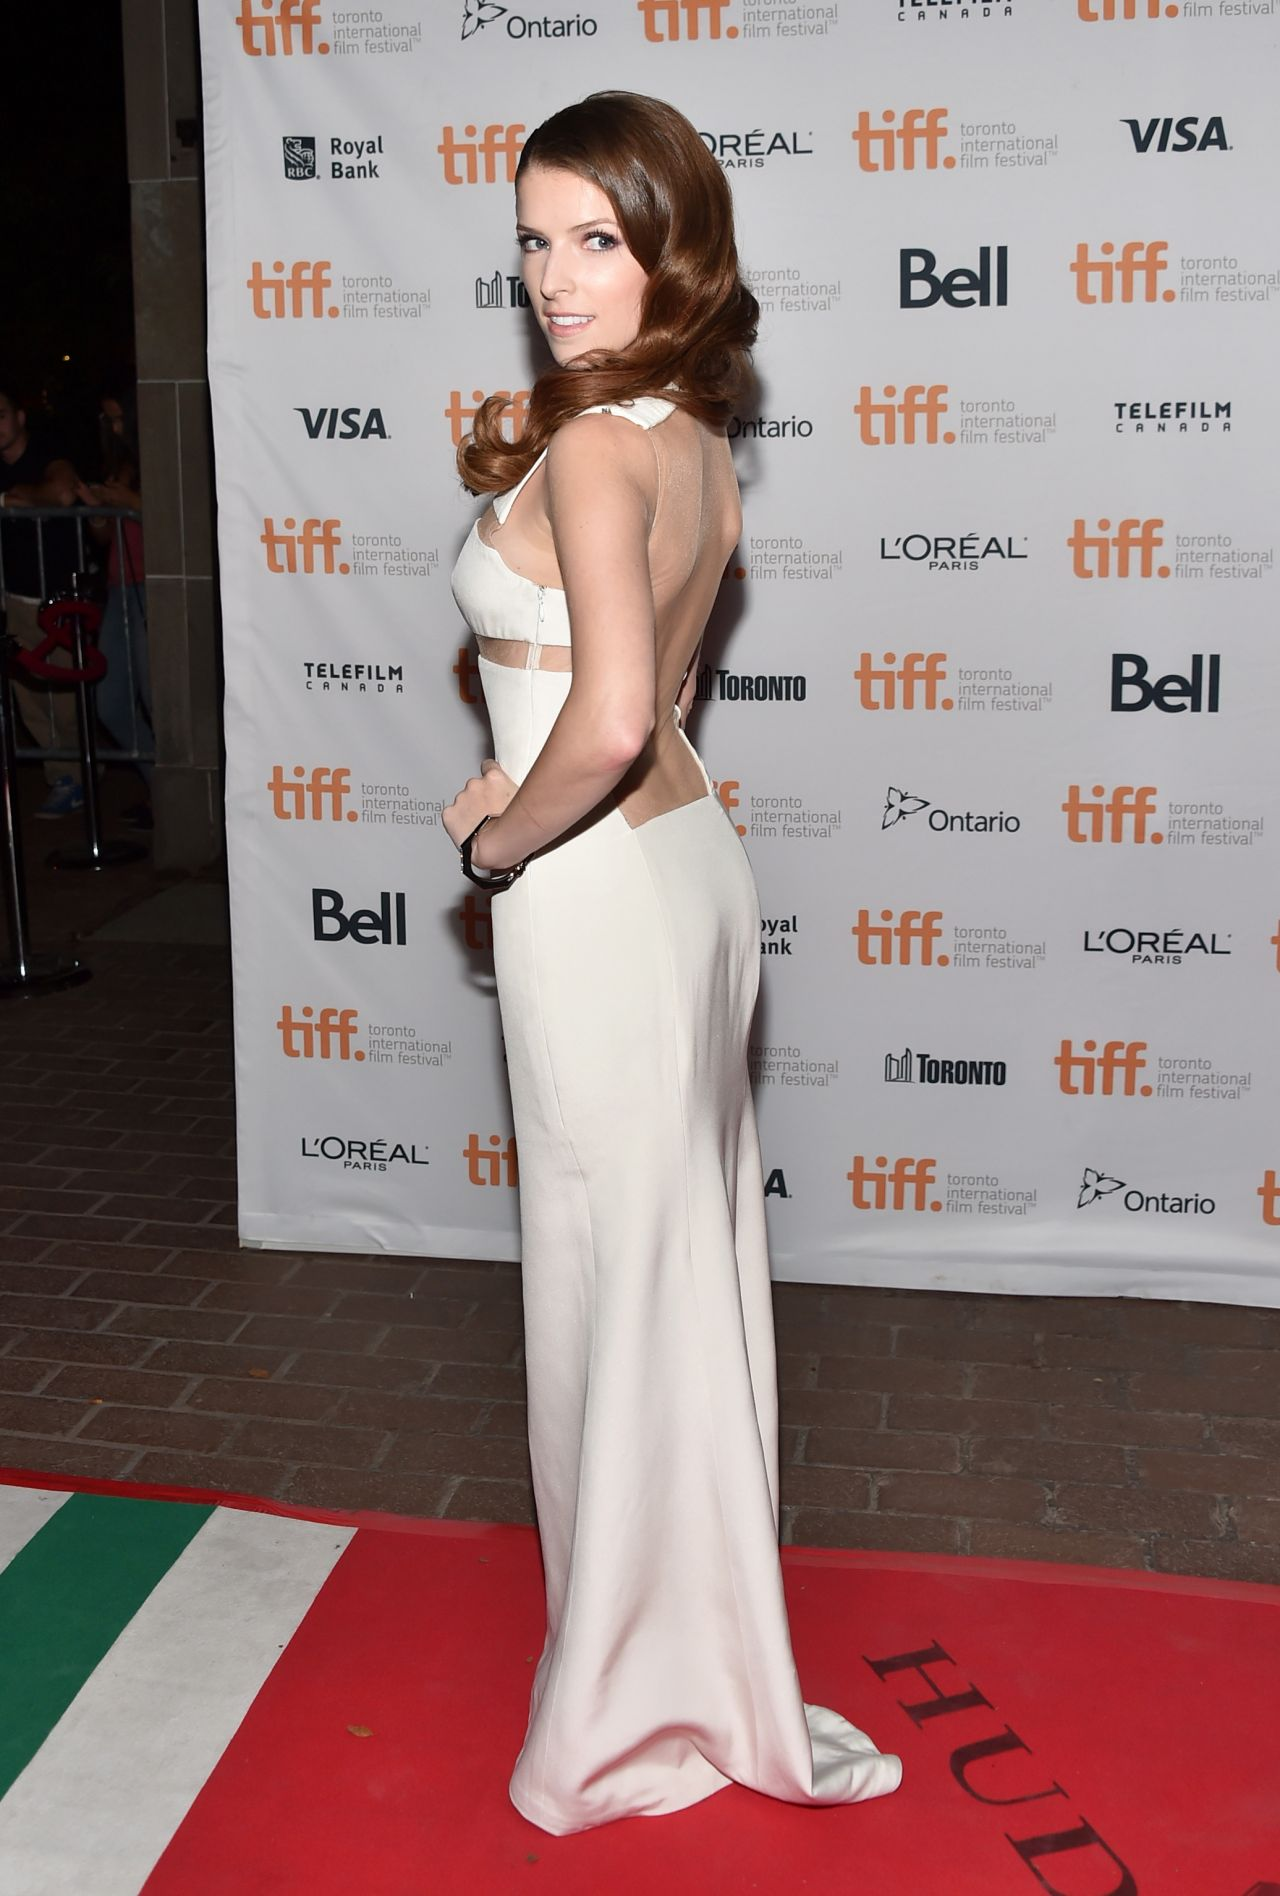 Anna Kendrick The Last Five Years Premiere At 2014 Tiff